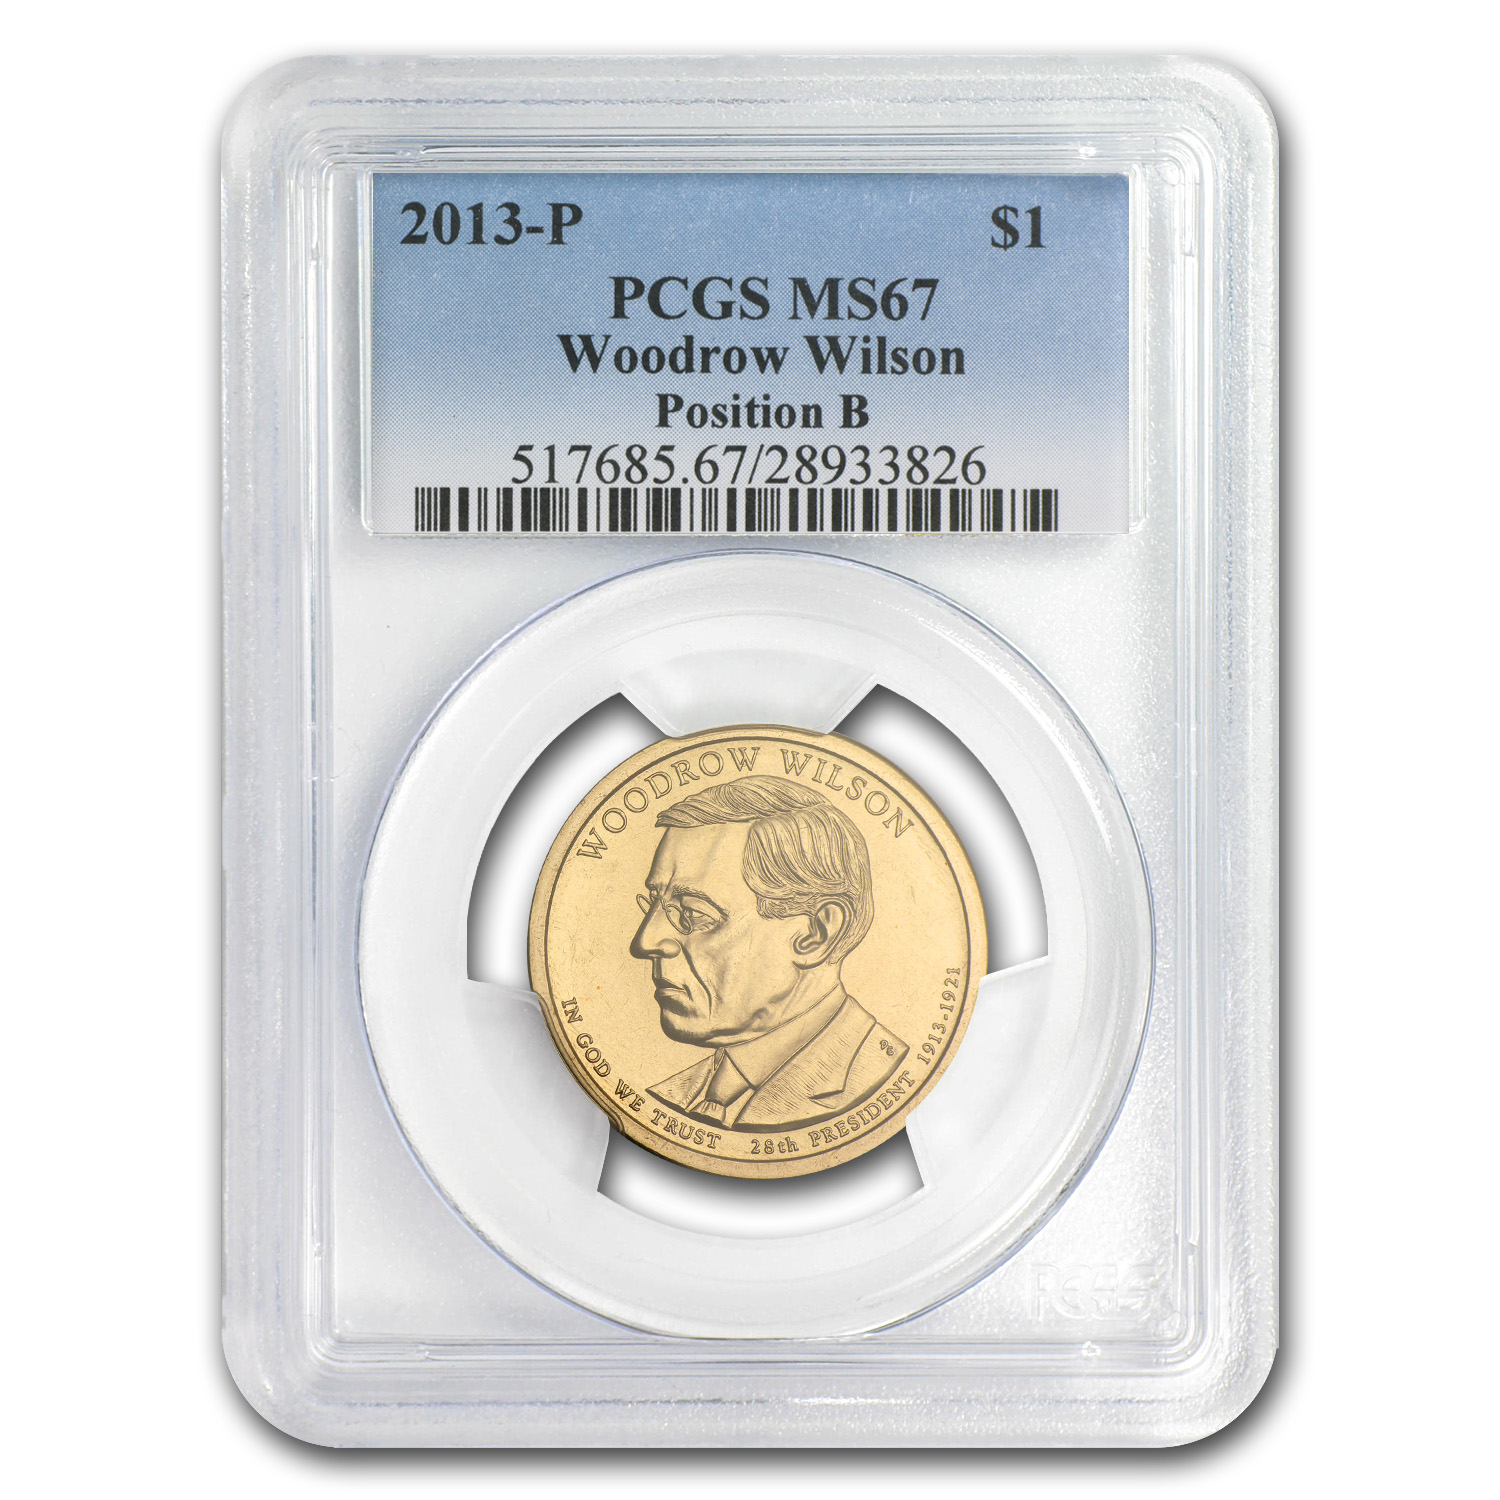 2013-P Woodrow Wilson Position B Presidential Dollar MS-67 PCGS